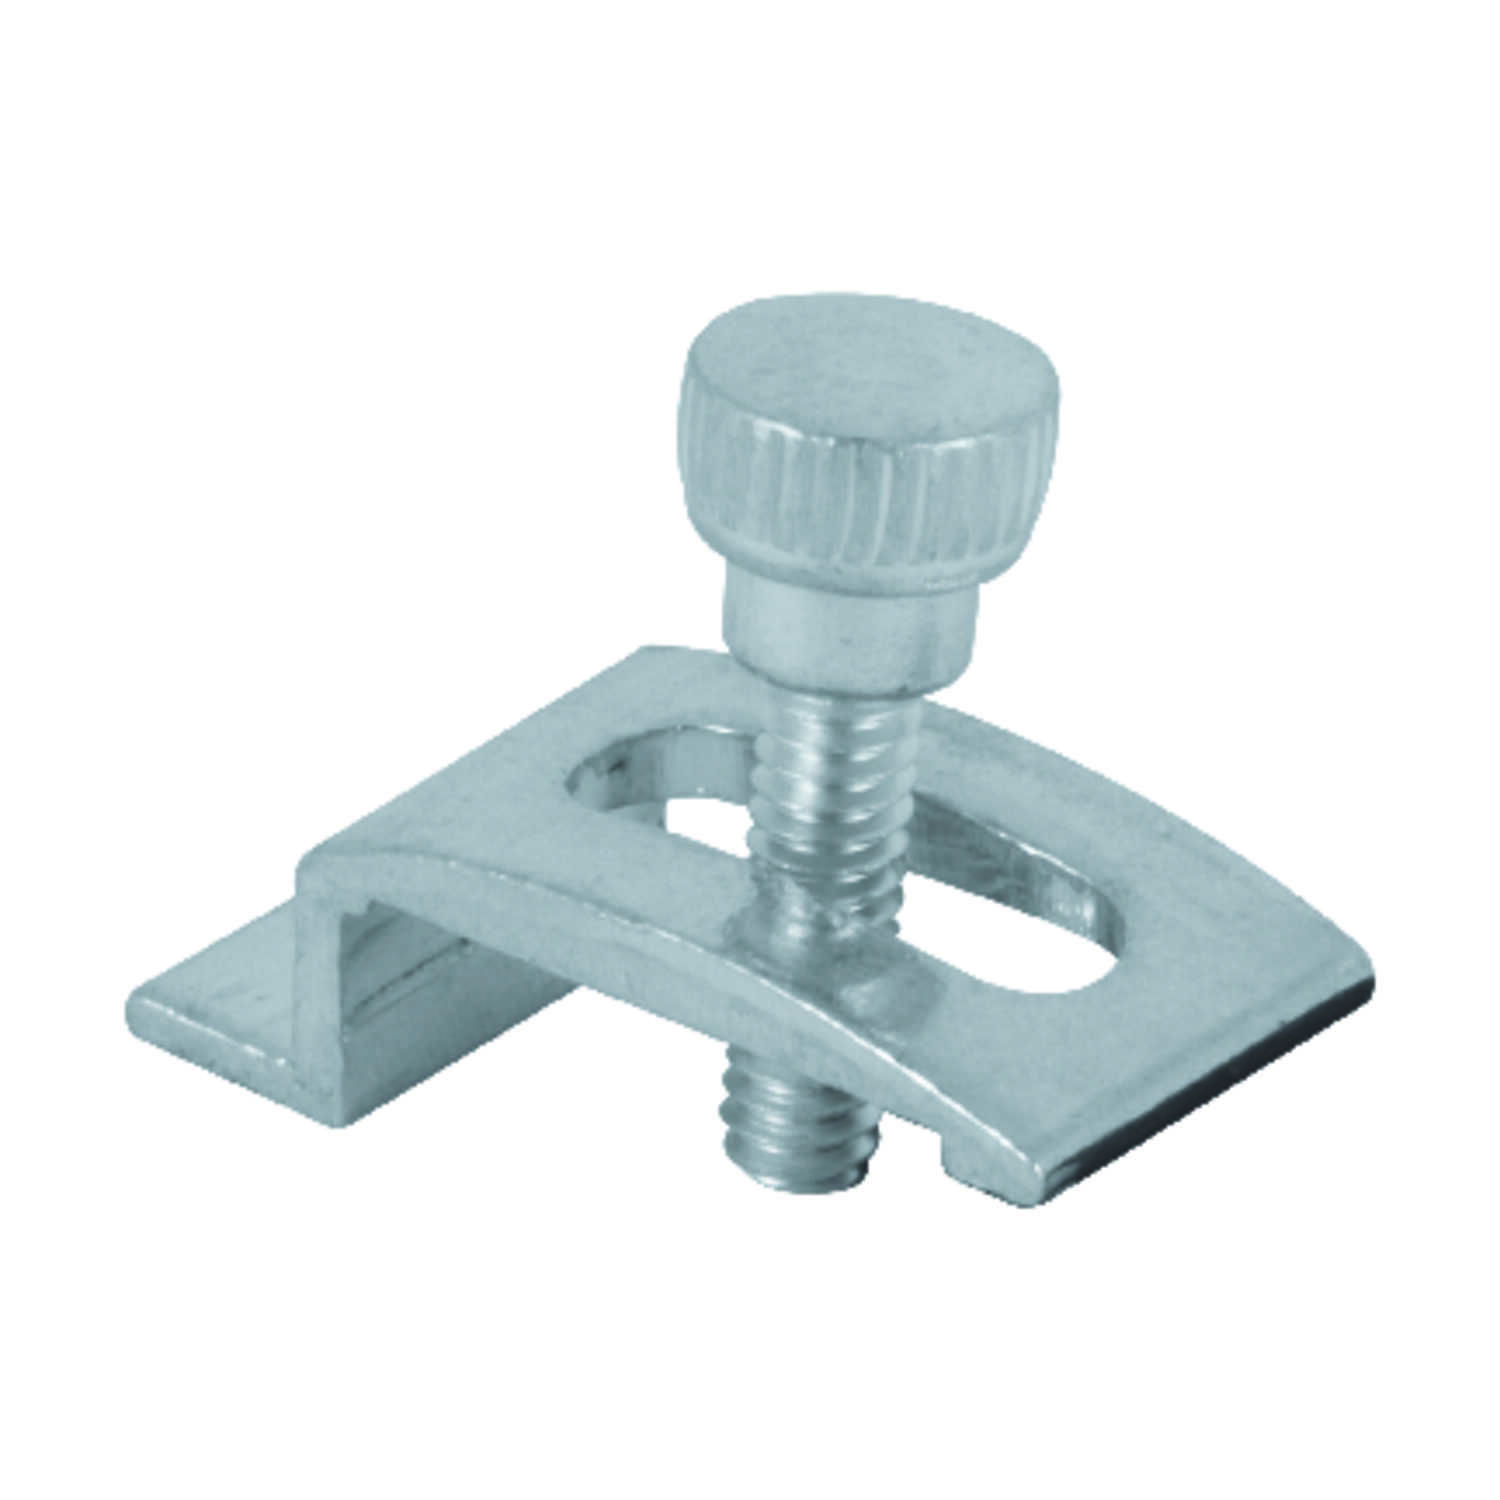 Prime-Line  Mill  Aluminum  Panel Clip  For 1/2 inch 4 pk